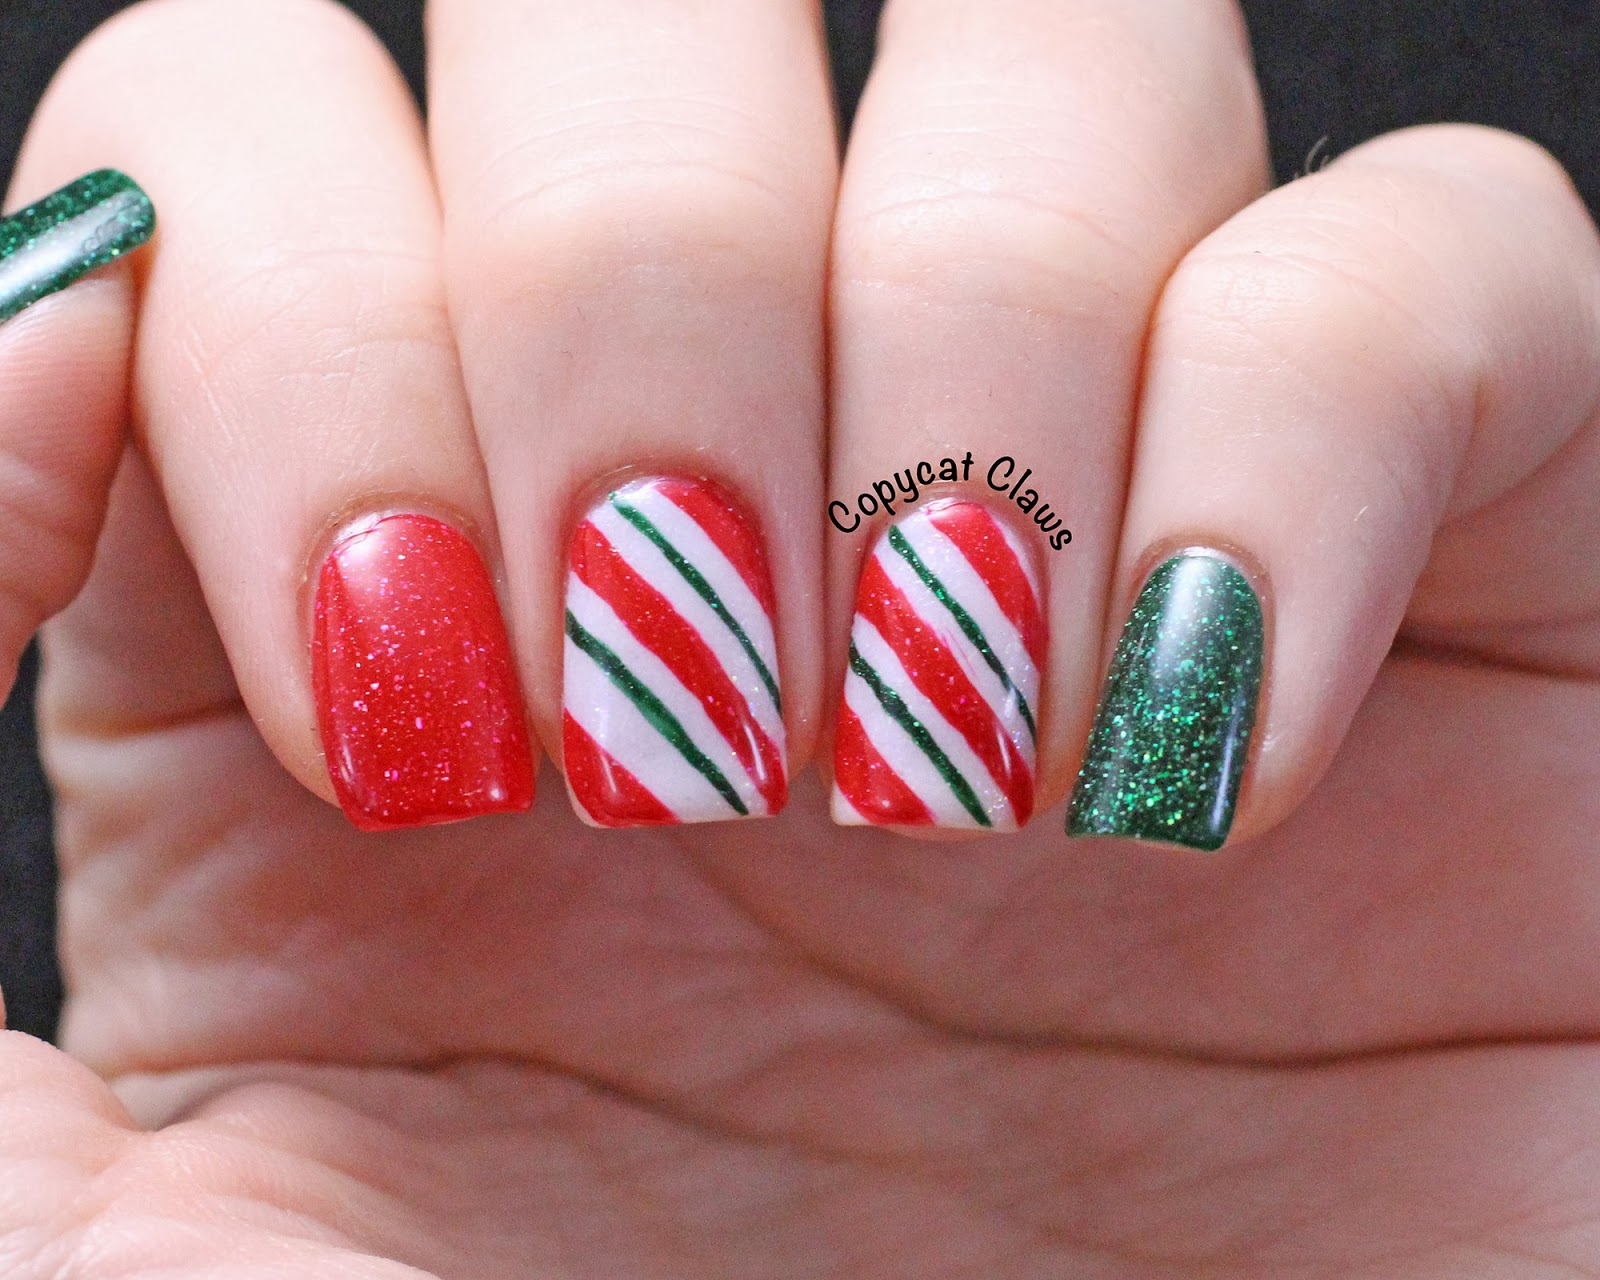 Copycat Claws: Picture Polish Candy Cane Nail Art